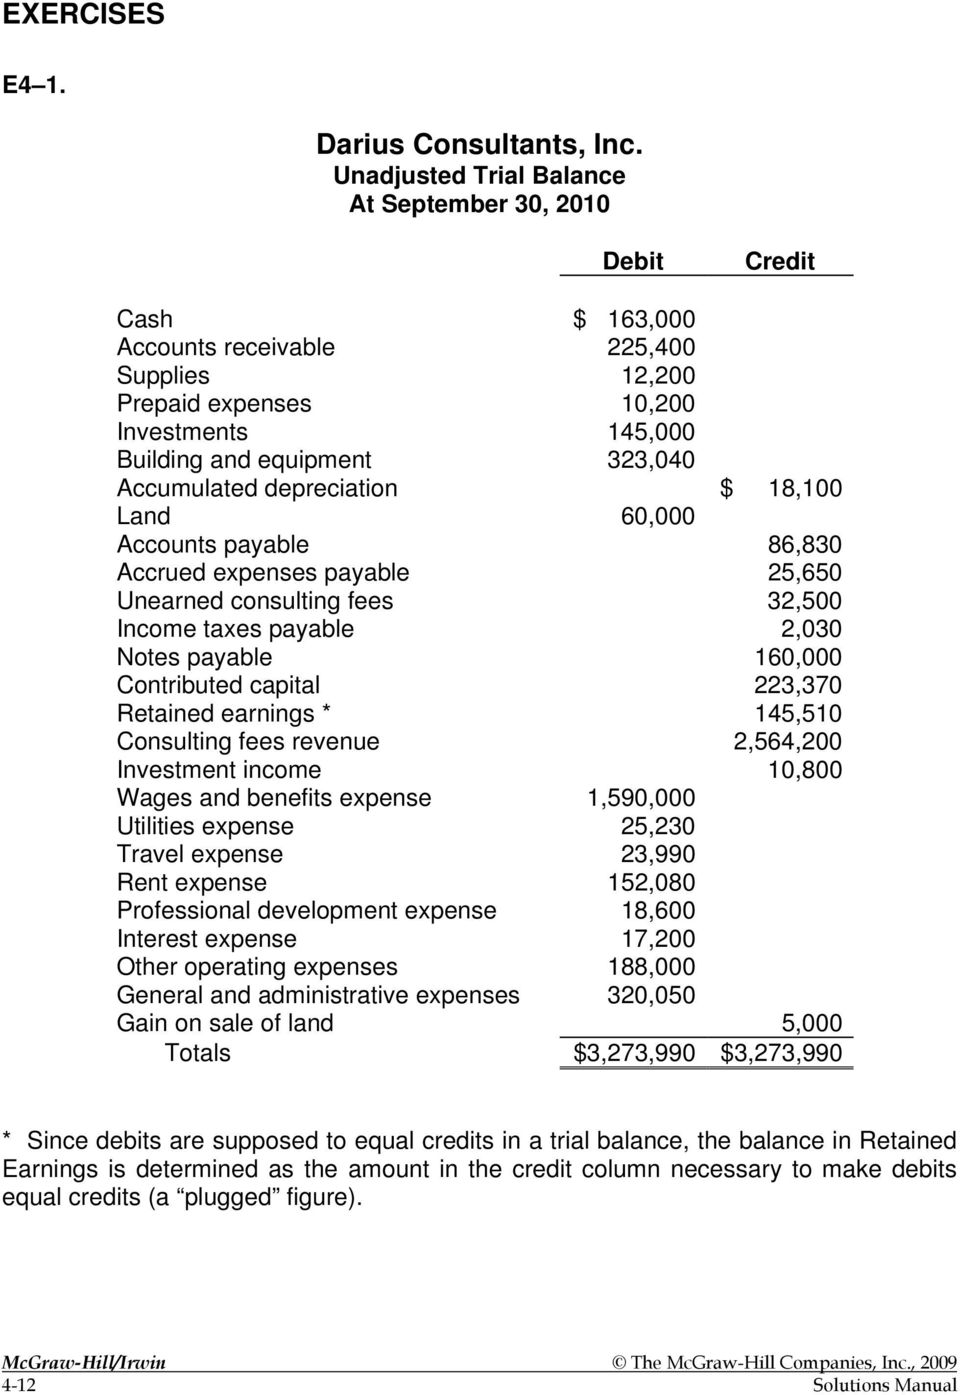 Chapter 4 Adjustments, Financial Statements, and the Quality